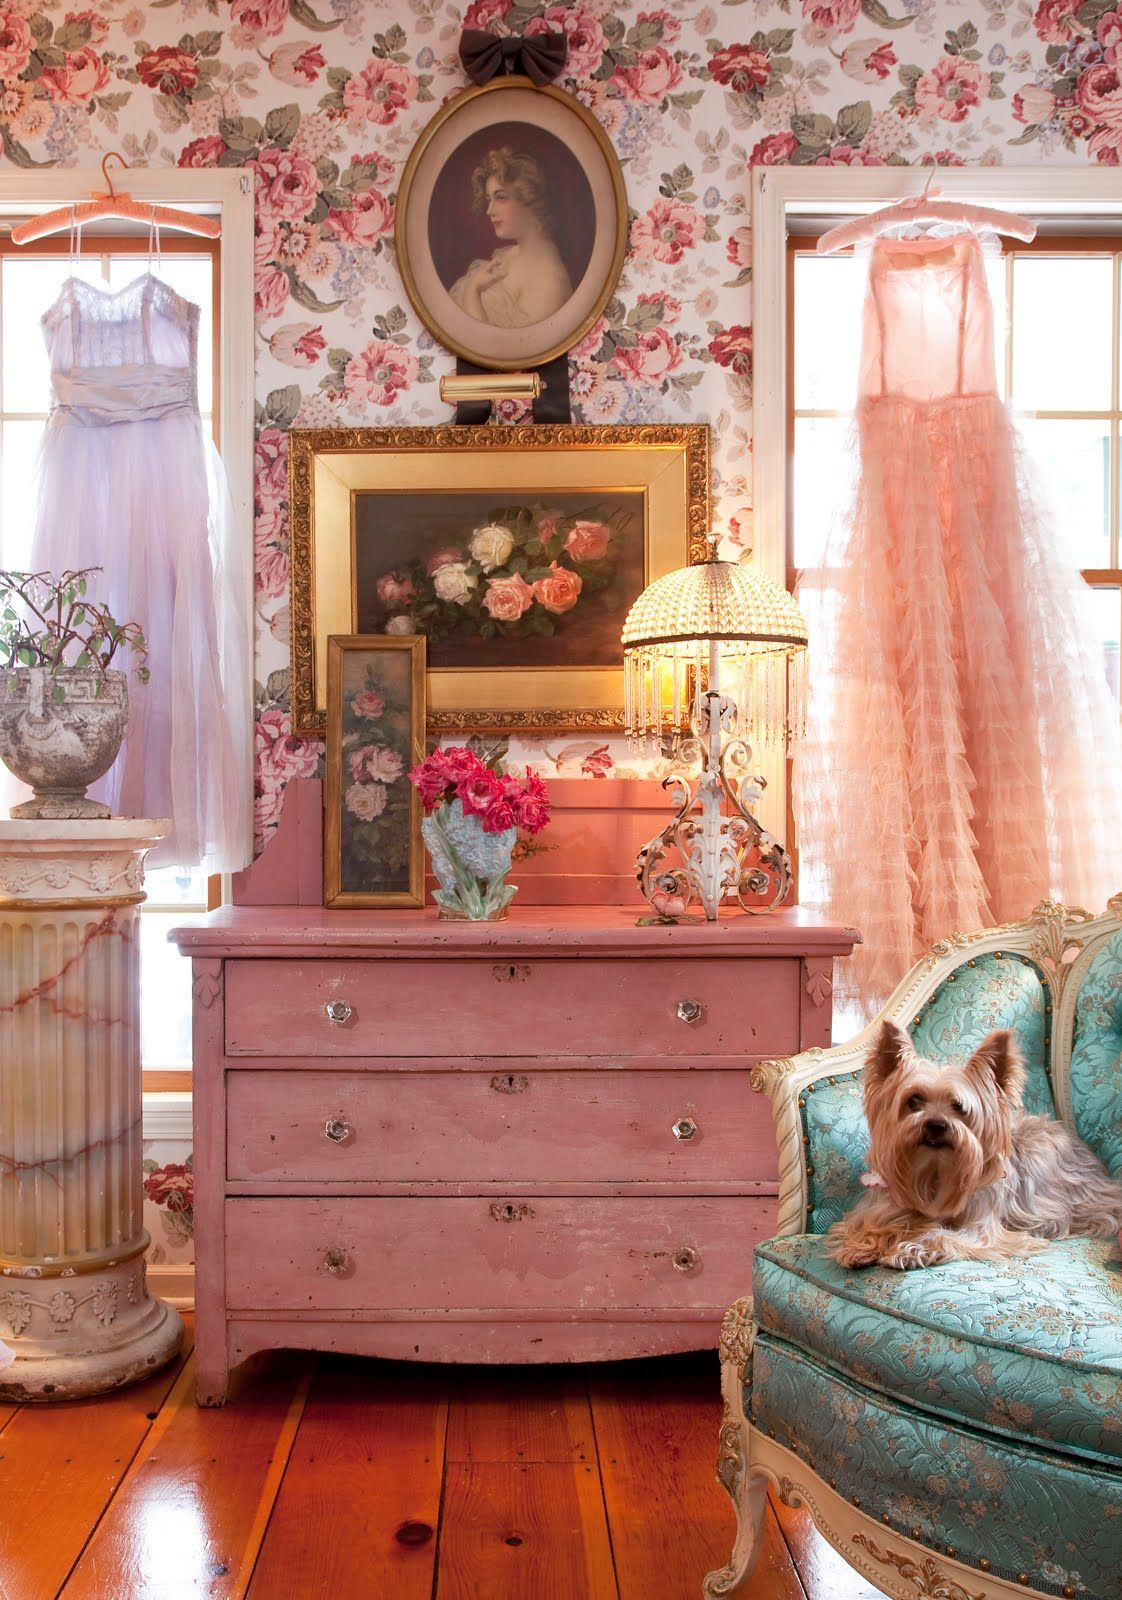 vintage bedroom decor pictures, photos, and images for facebook